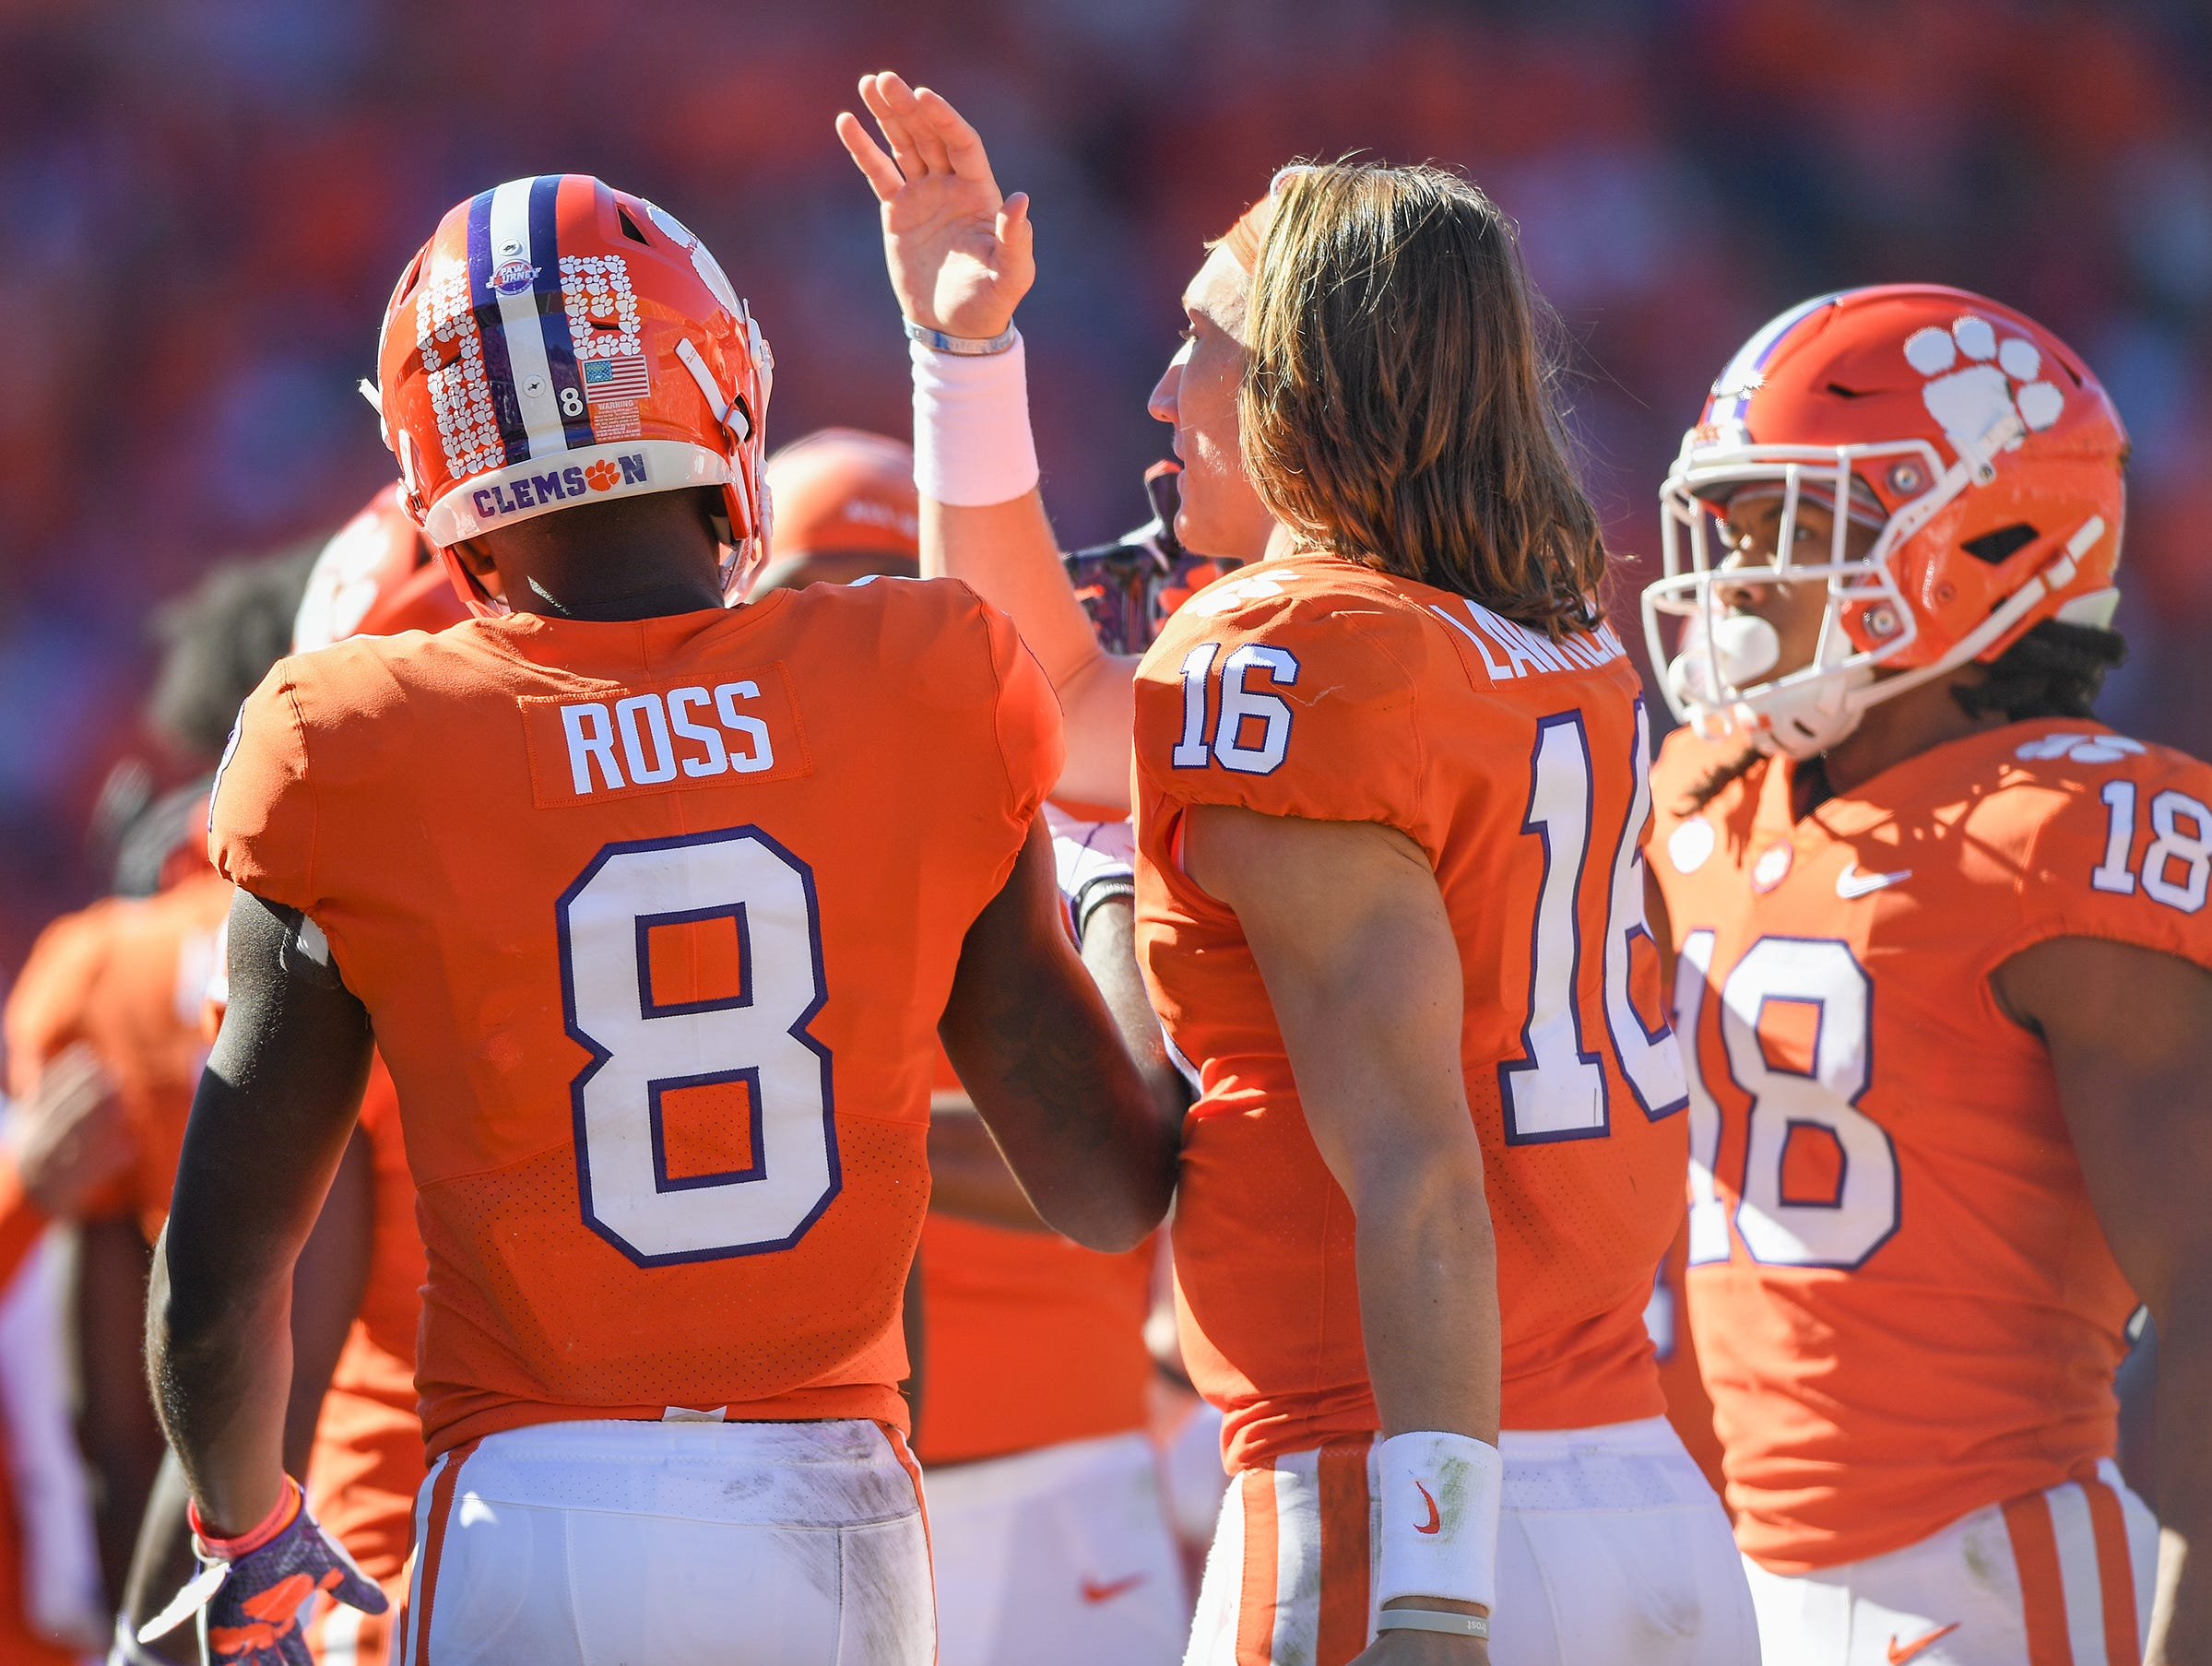 Clemson quarterback Trevor Lawrence (16) congratulates wide receiver Justyn Ross (8) after Ross caught a TD against Louisville during the 3rd quarter Saturday, November 3, 2018 at Clemson's Memorial Stadium.